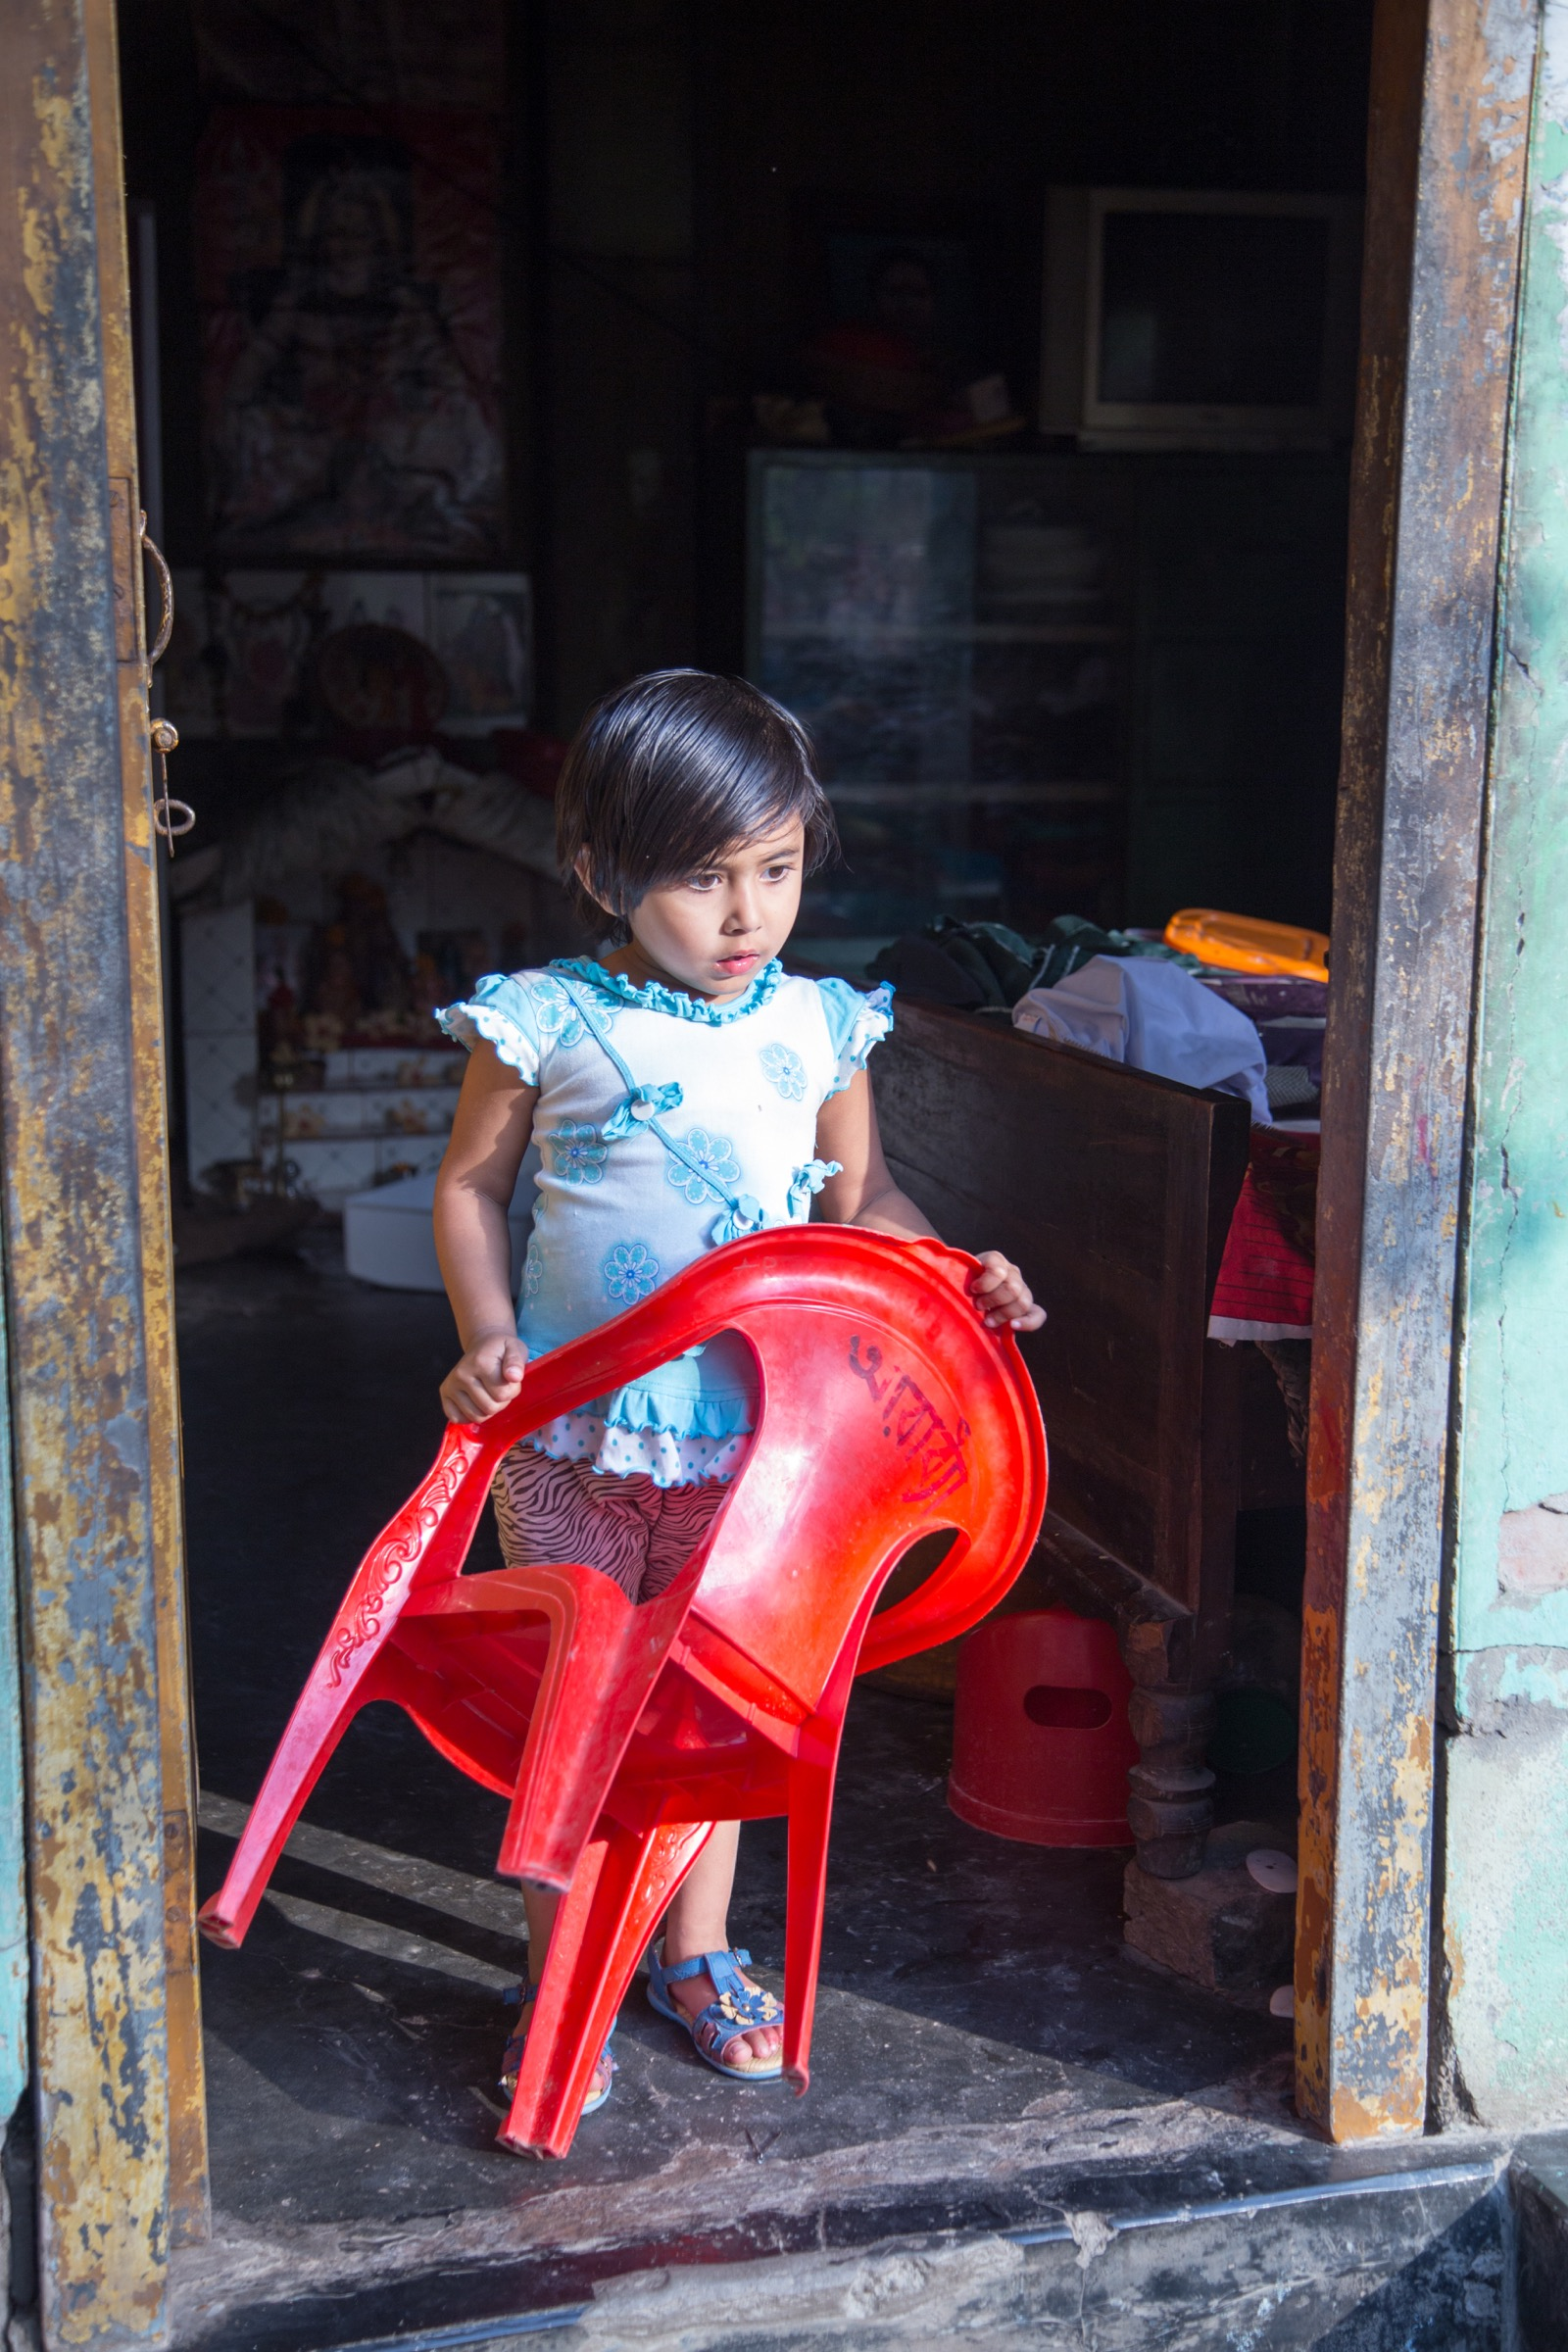 A young girl has already started practicing the customary greeting in in northern Bangladesh, offering visitors with a comfortable place to sit. Photograph by Steven Bedard